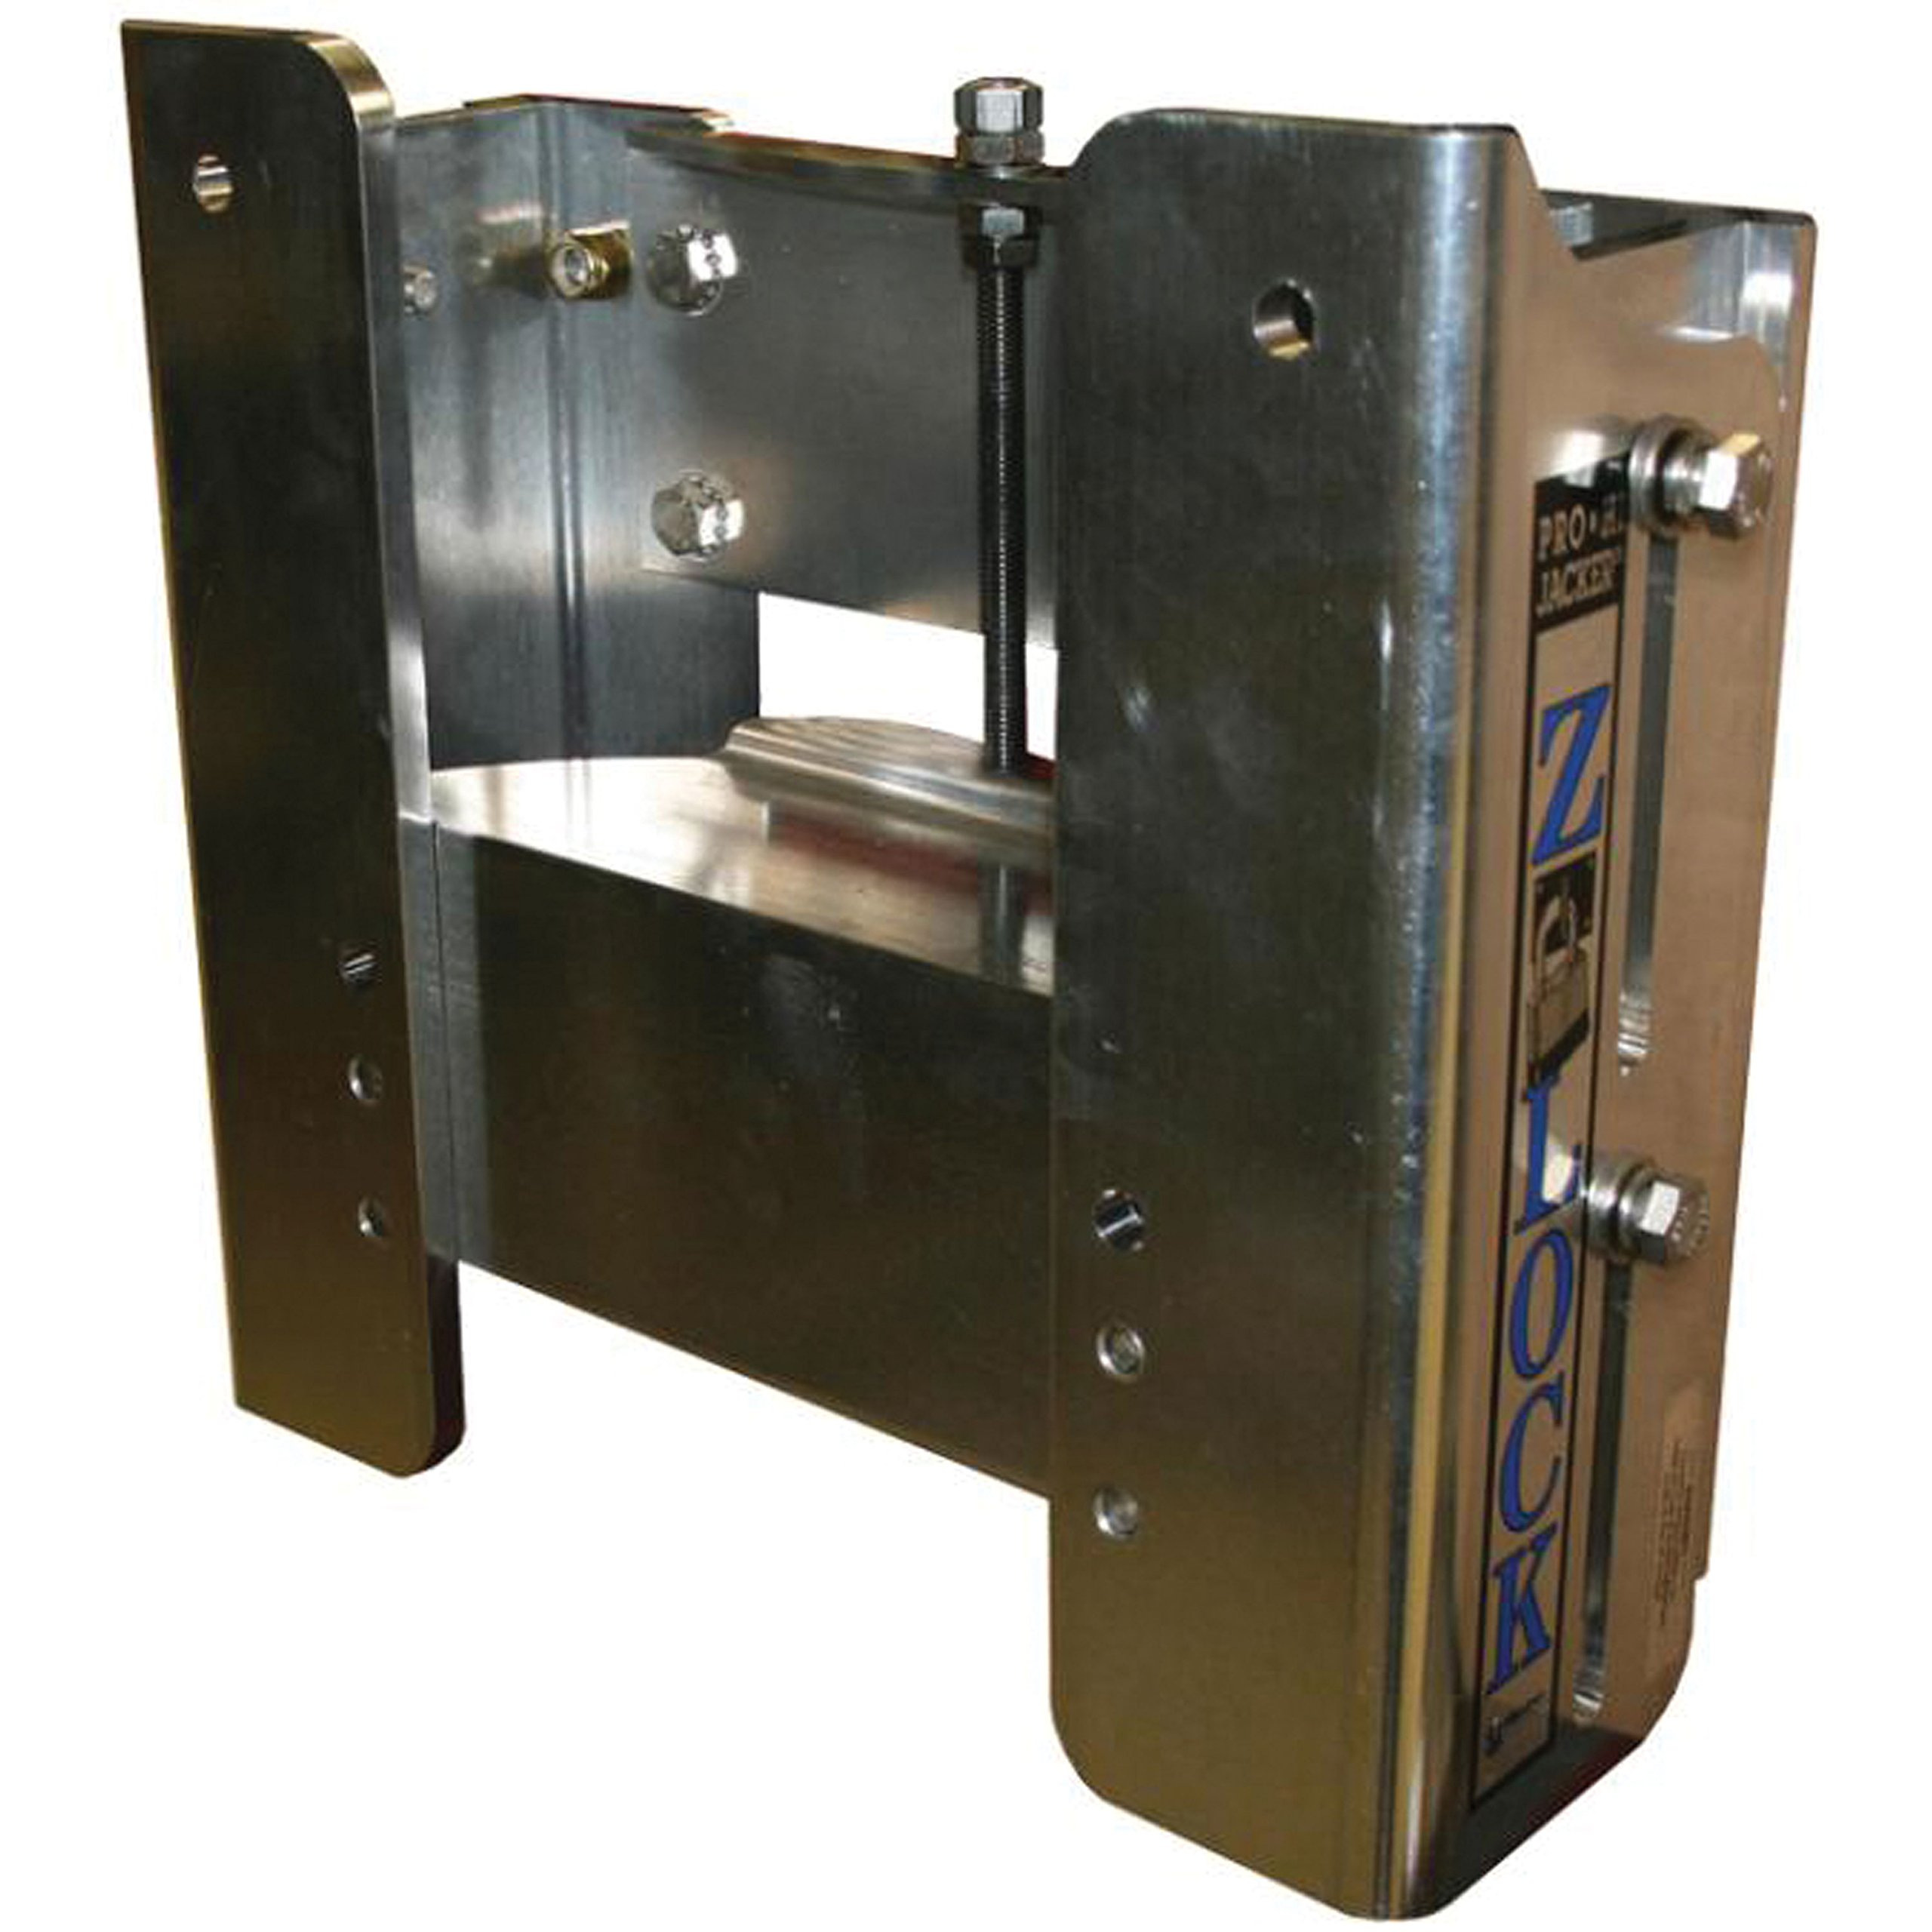 RITE-HITE Manual Jack Plates or 10 inch; Add Speed Stability 8 inch 6 inch and Fuel Economy to Your Boat